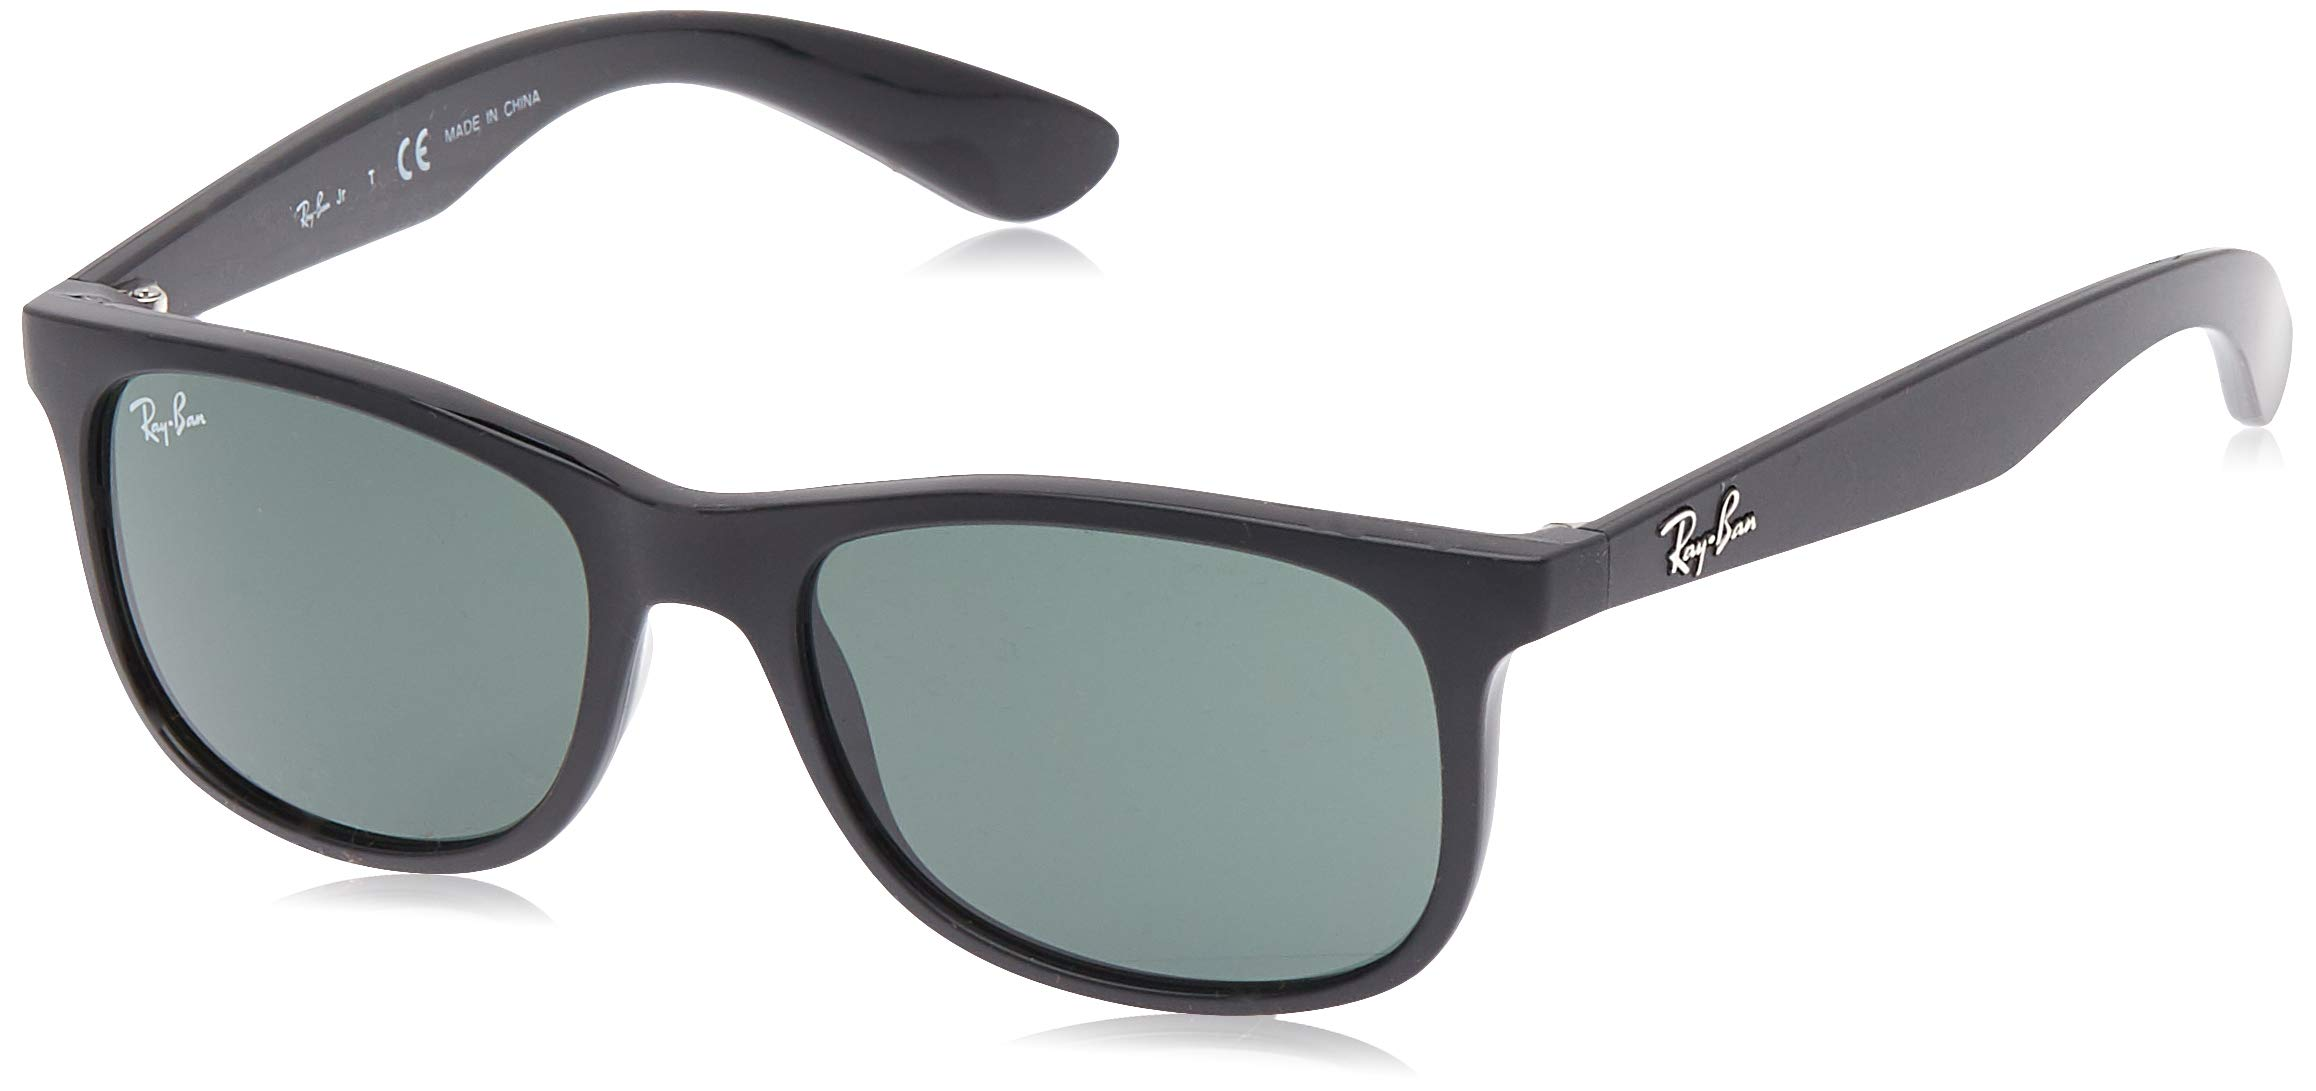 RAY-BAN JUNIOR Kids' RJ9062S Rectangular Kids Sunglasses, Matte Black/Dark Green, 48 mm by RAY-BAN JUNIOR